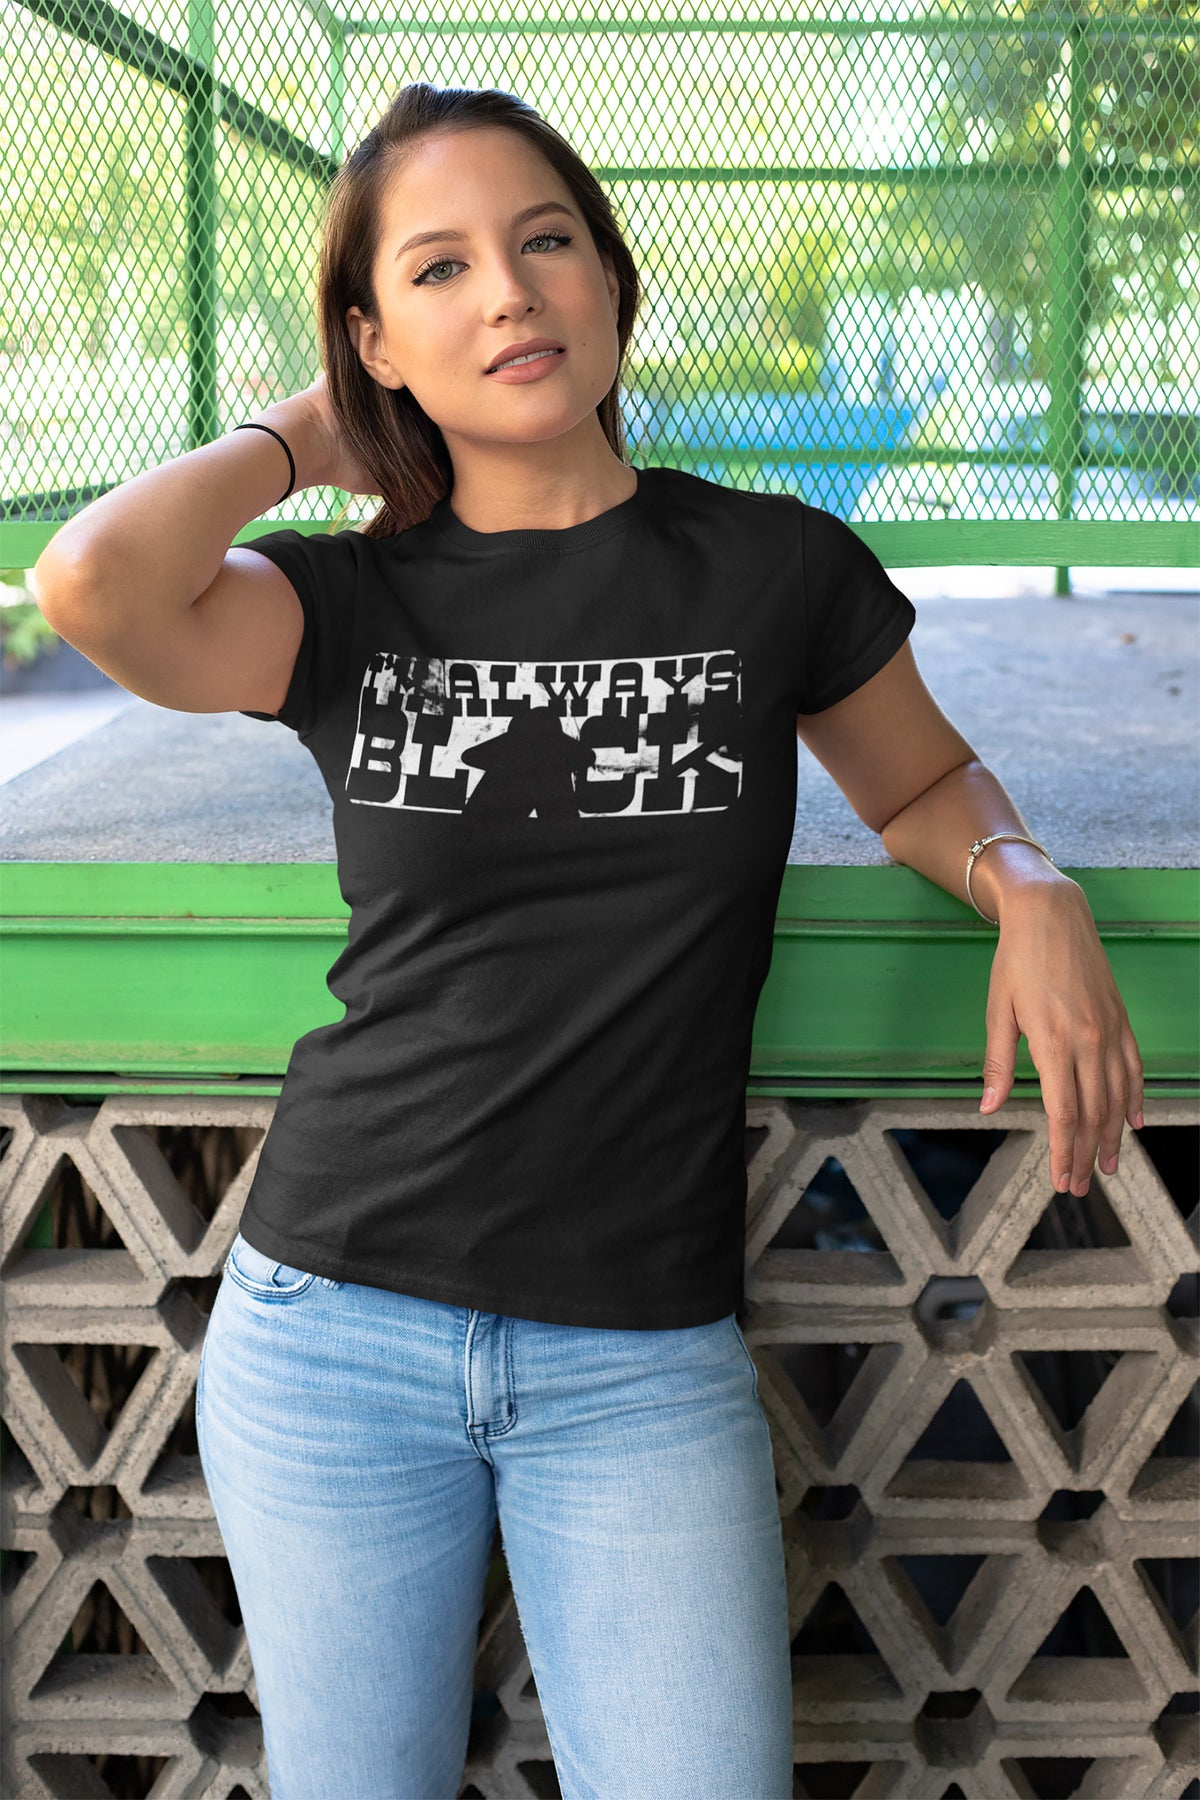 I'm Always Black Meeple Board Game T-Shirt Action Shot Women's